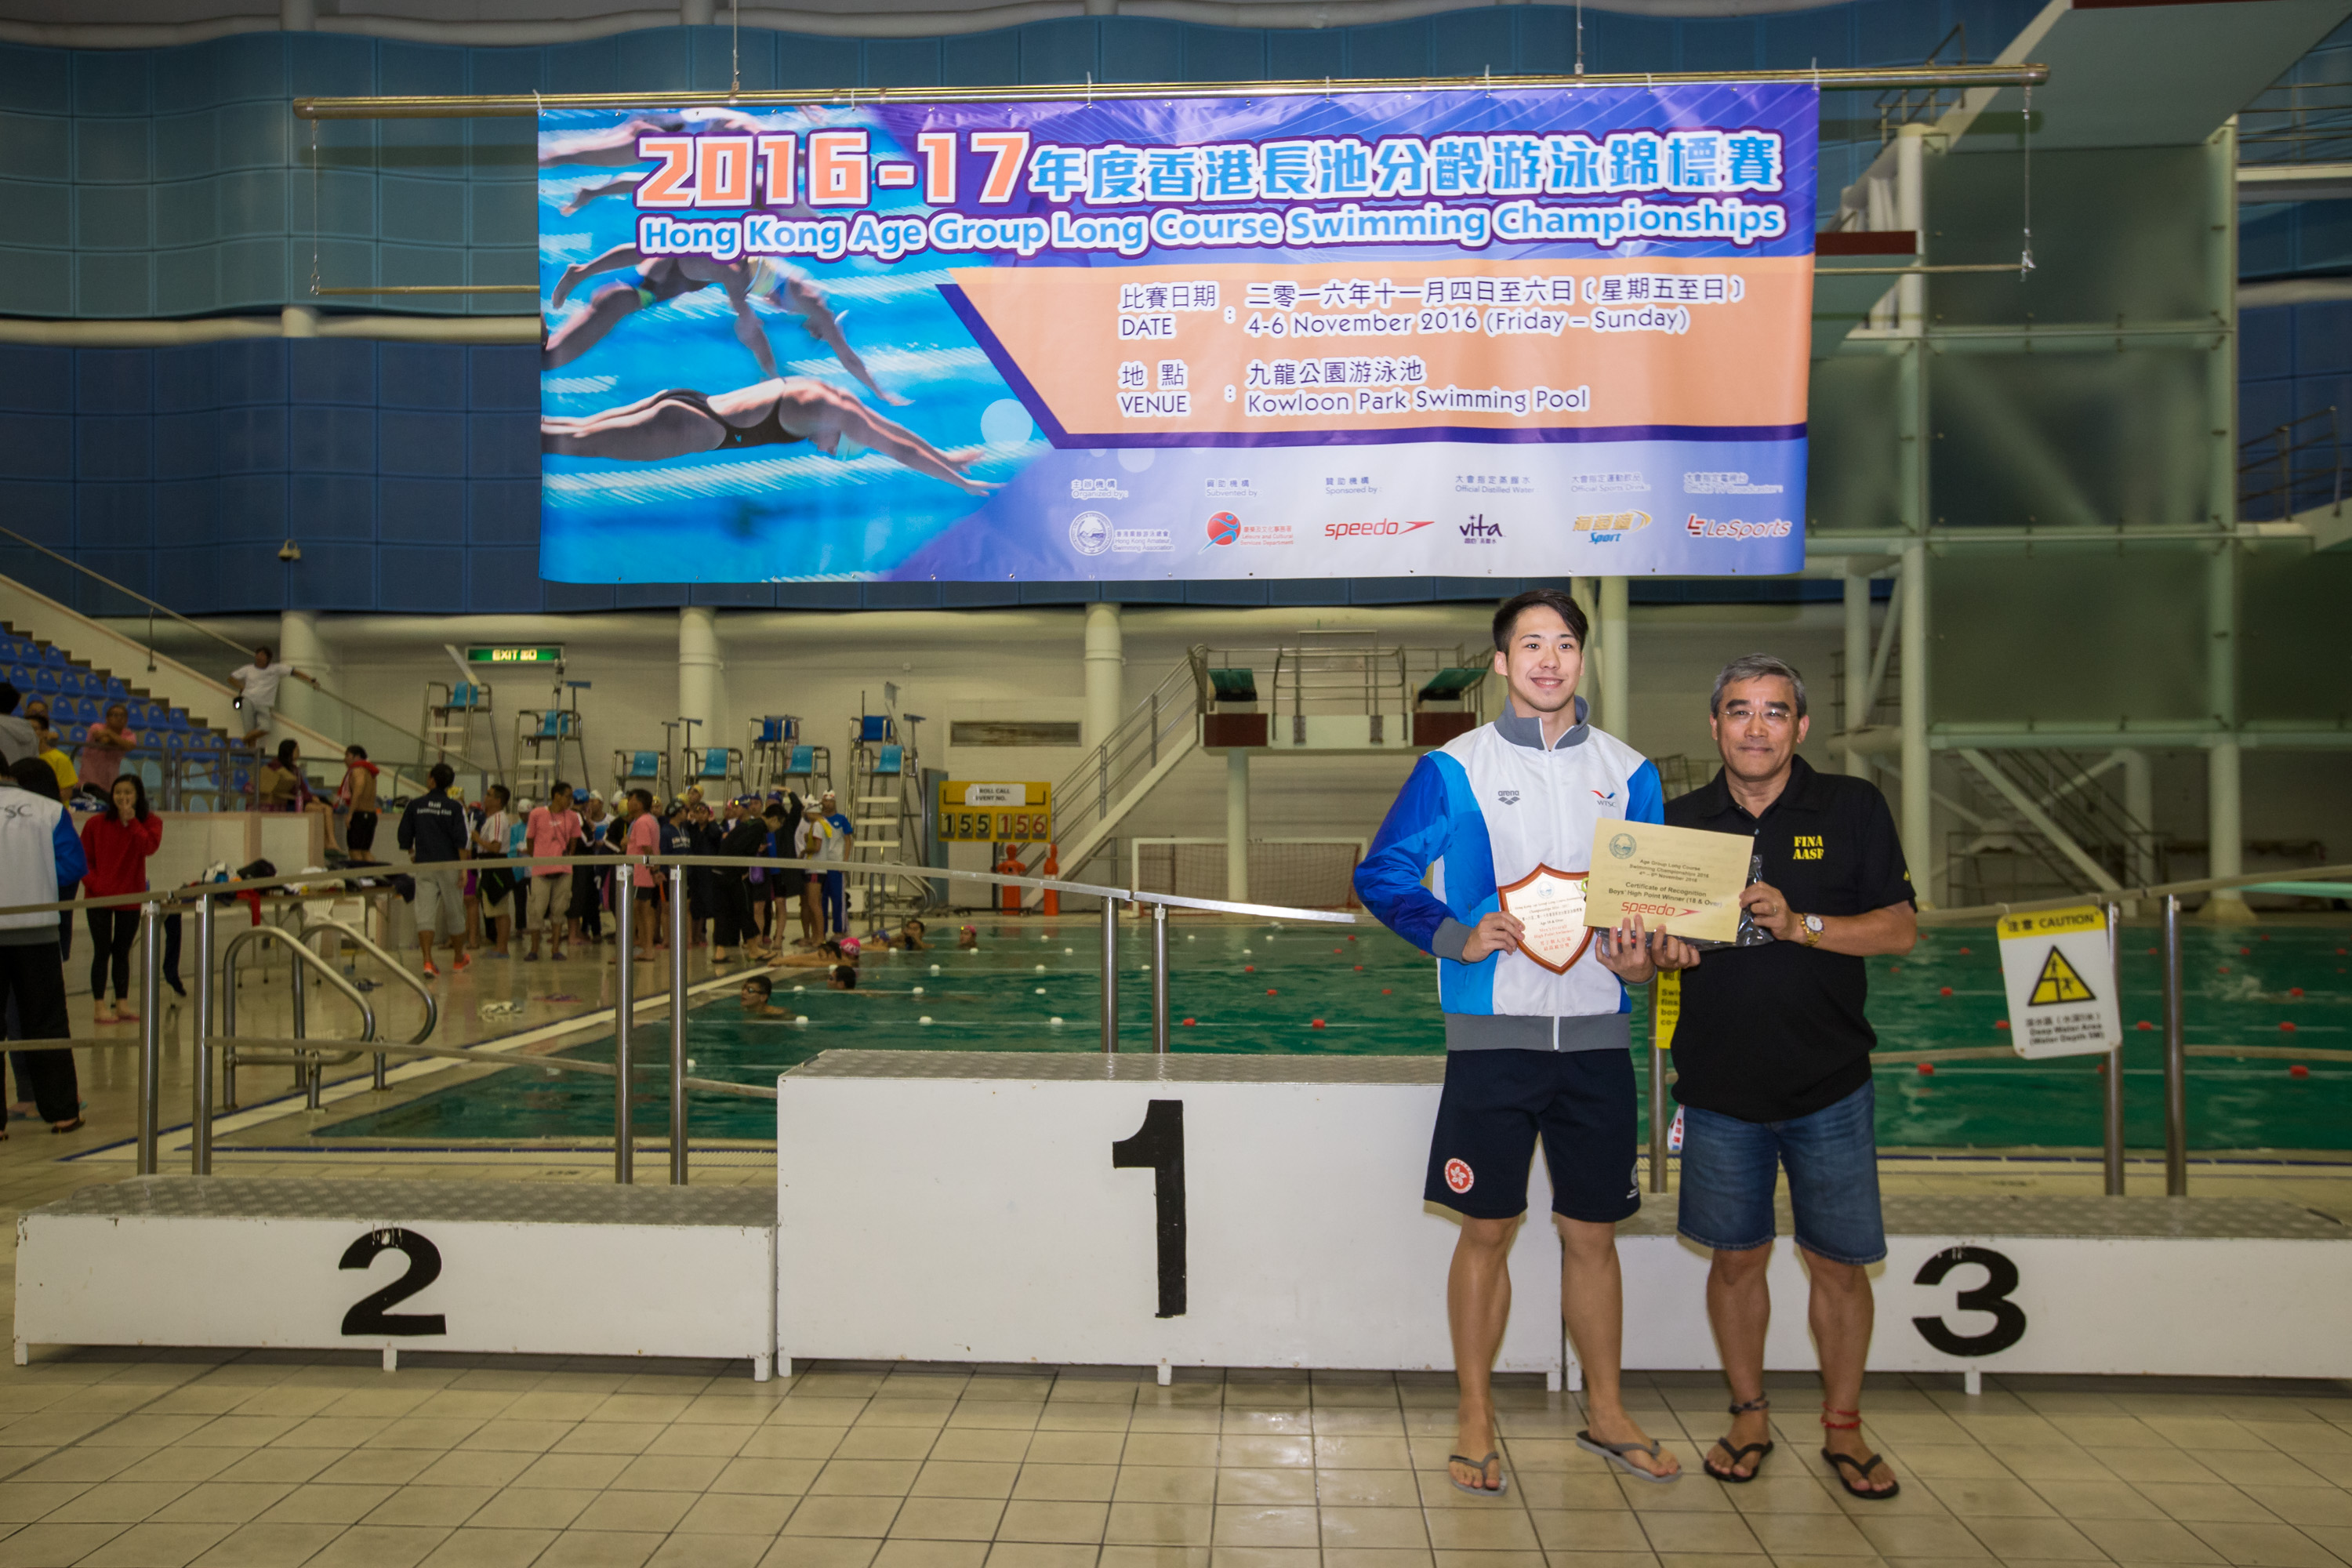 Win Tin Swimming Club - 2016 LCC Ng Chun Nam